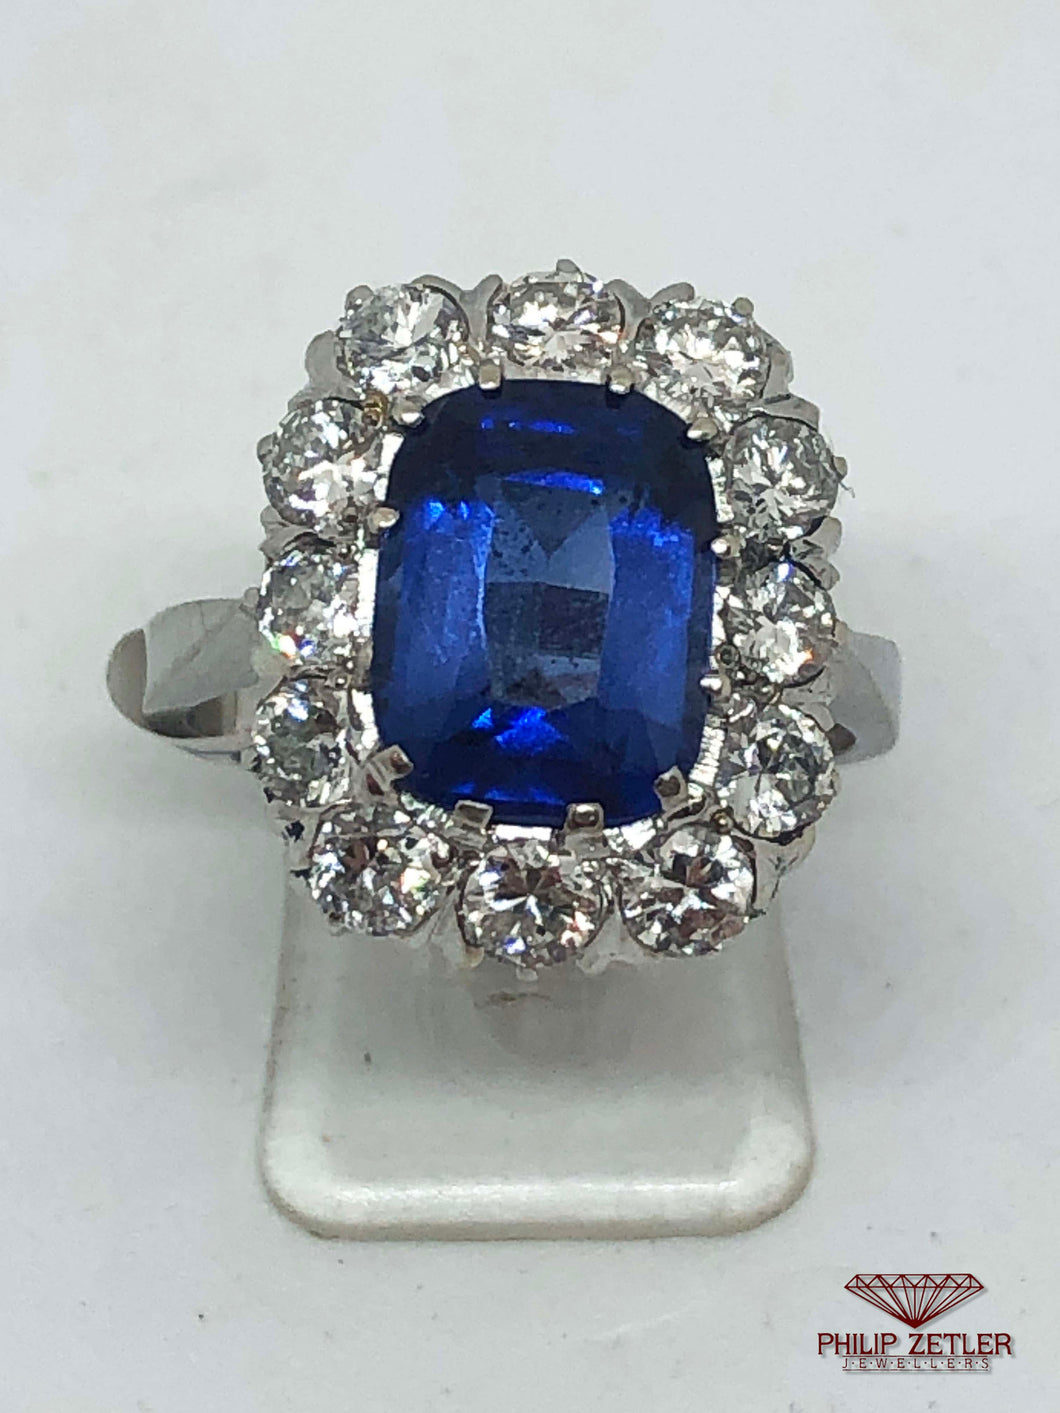 18ct White Gold Diamond Rectangular Cut Tanzanite Ring